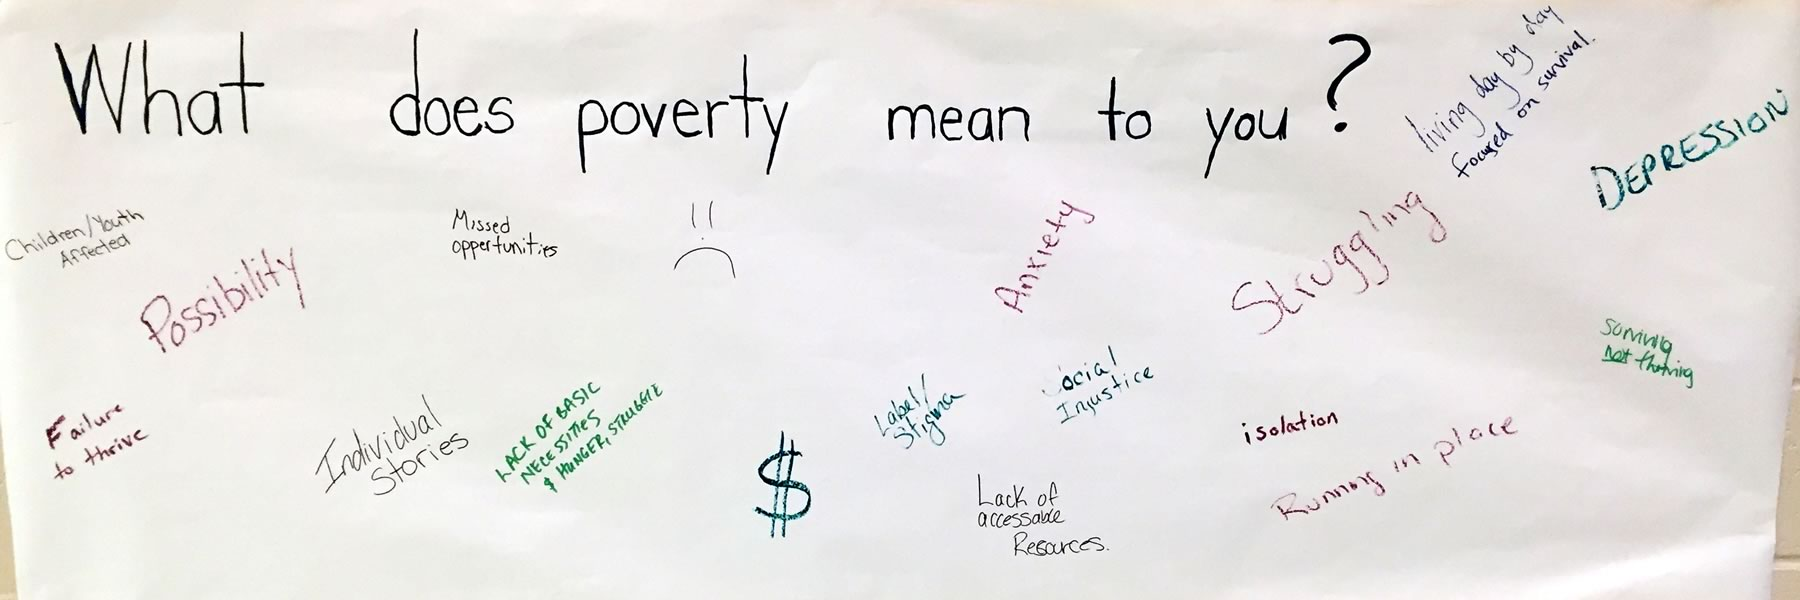 What Does Poverty Mean to You